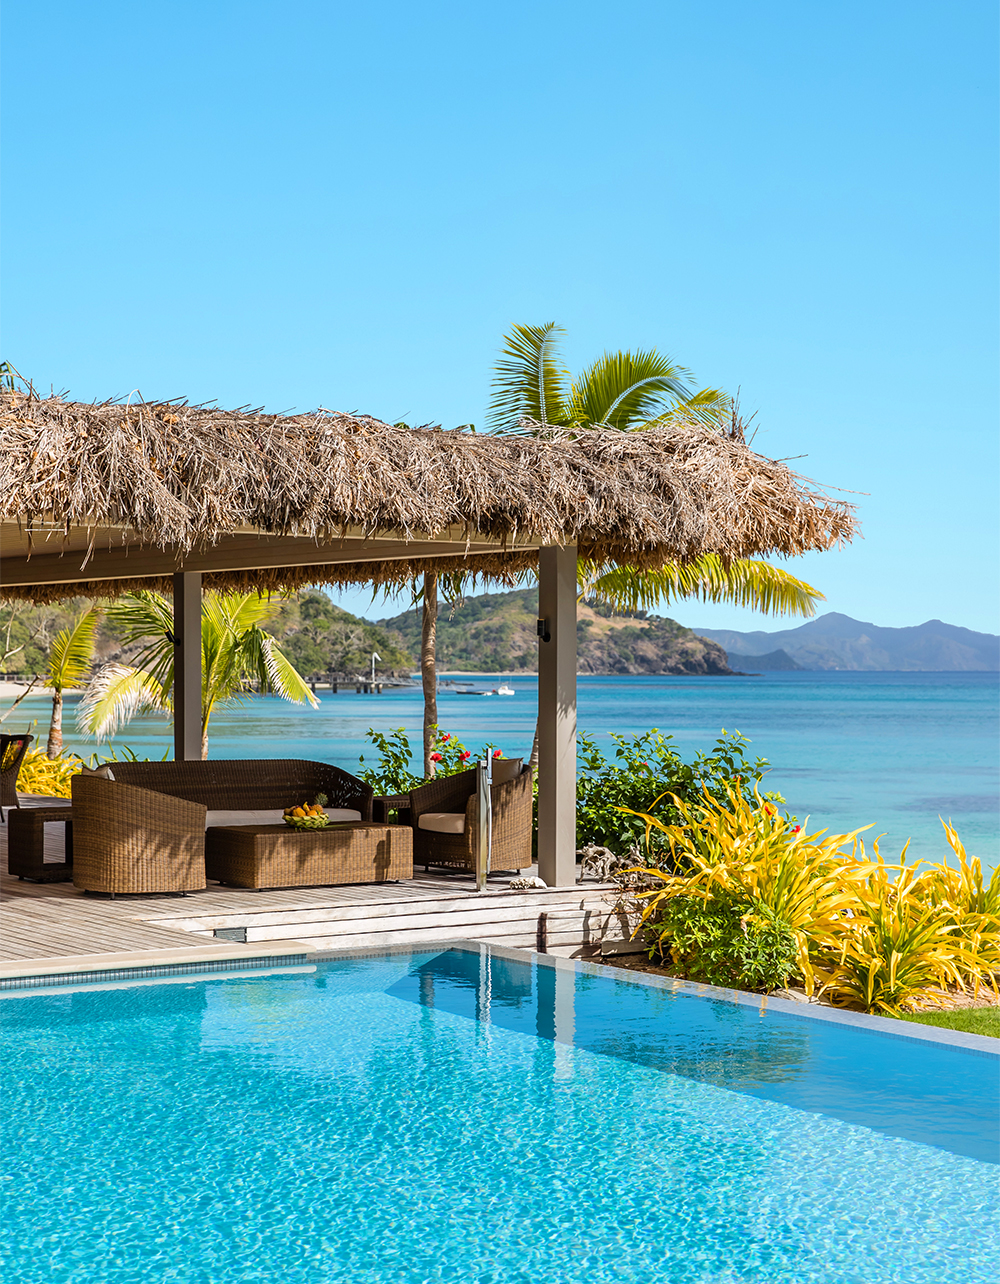 Kokomo Island Fiji's hilltop residences come with arresting lagoon views.